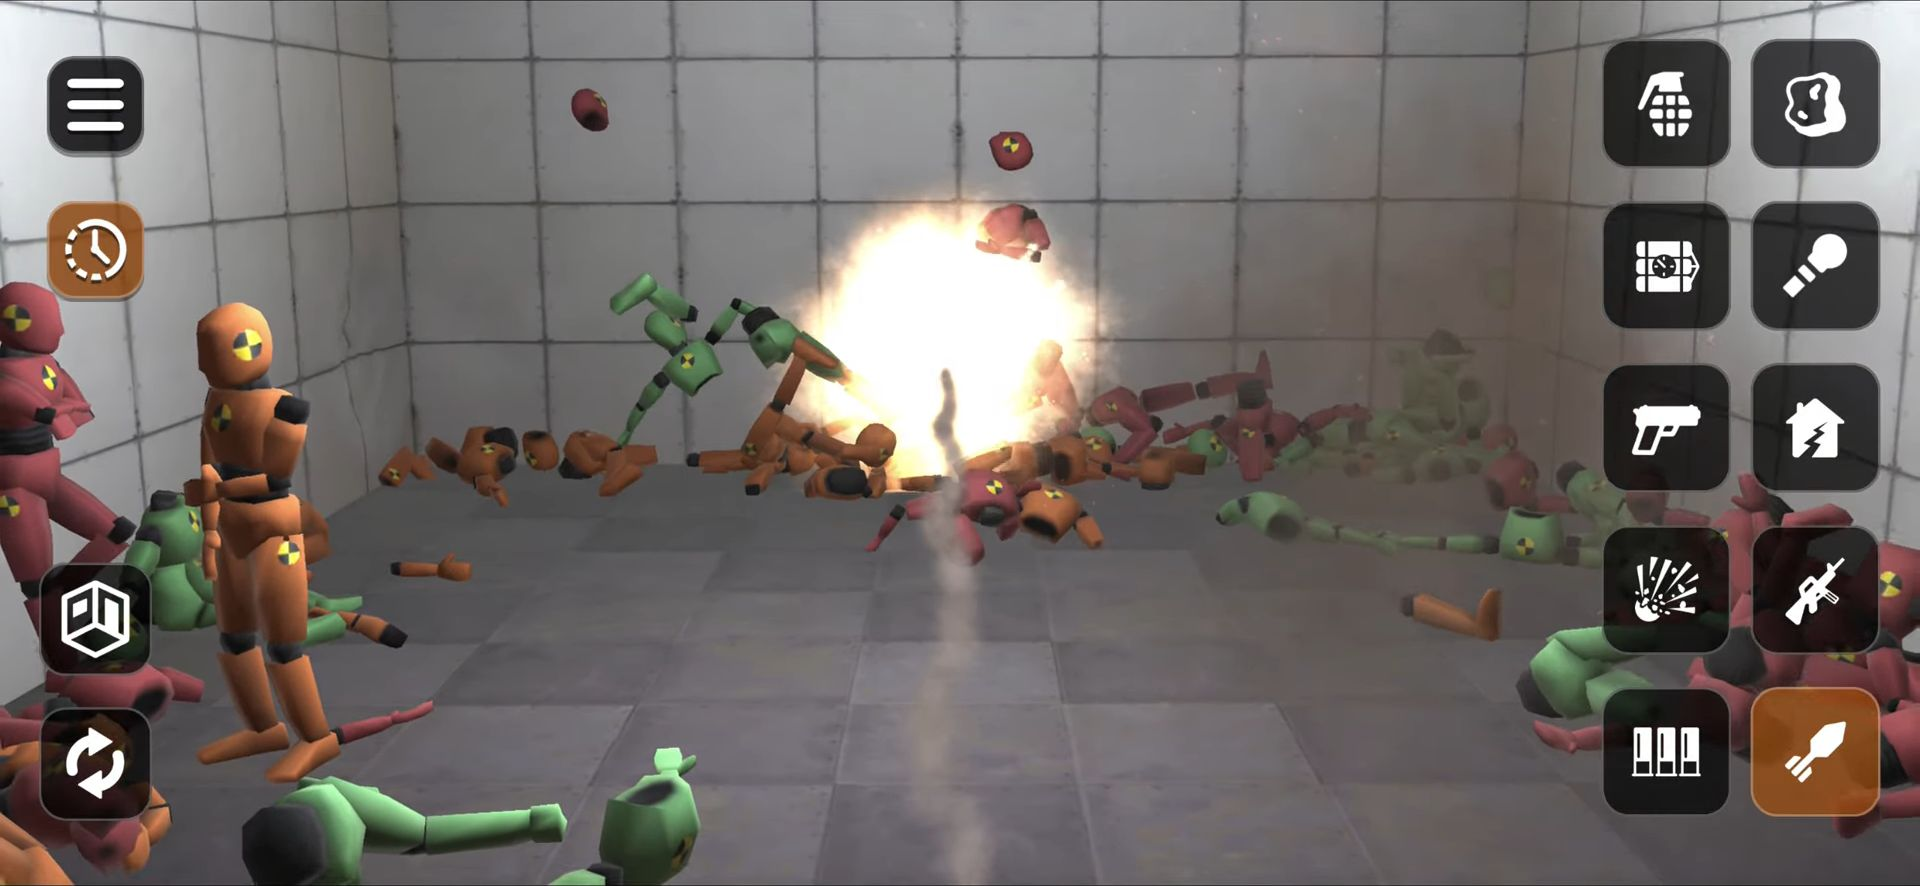 Room Rampage pour Android